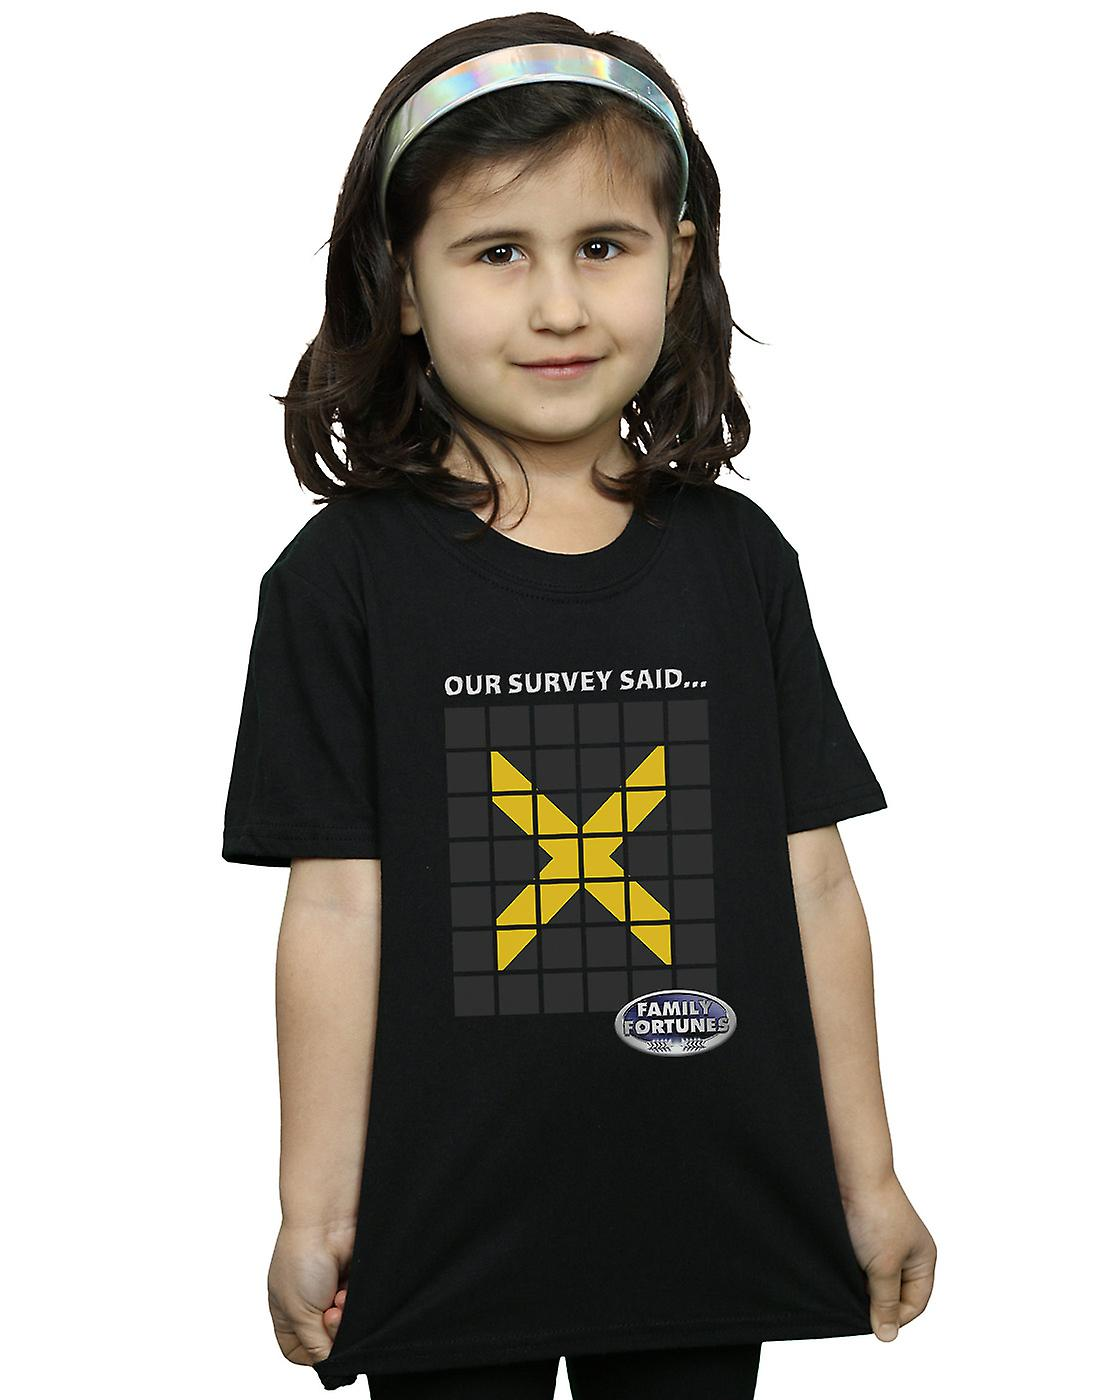 Family Fortunes Girls Our Survey Said T-Shirt